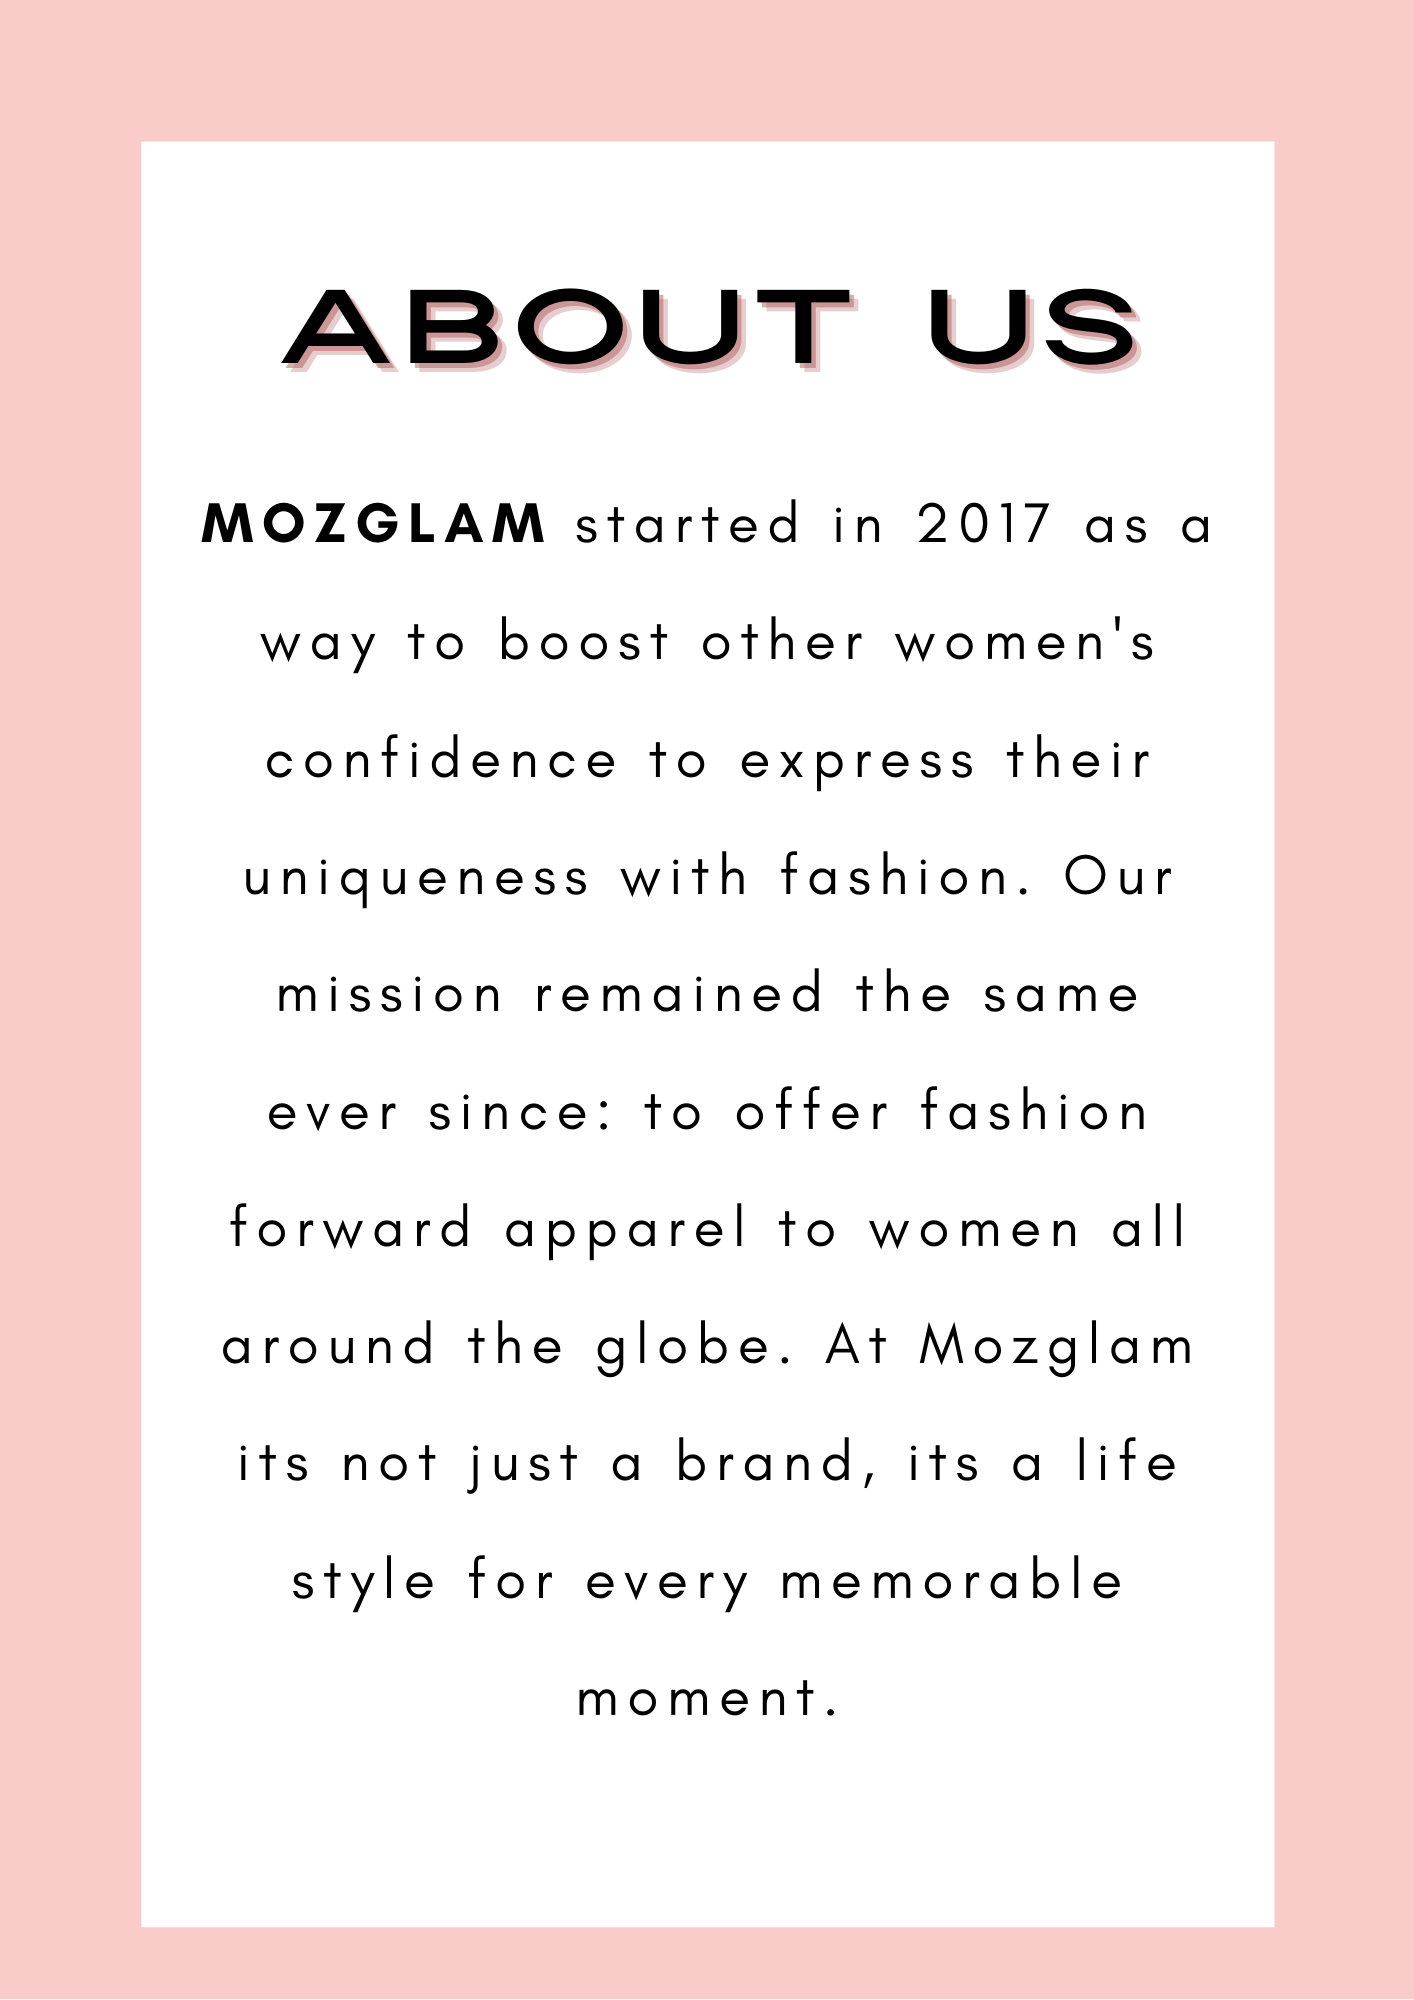 about-us-mozglam